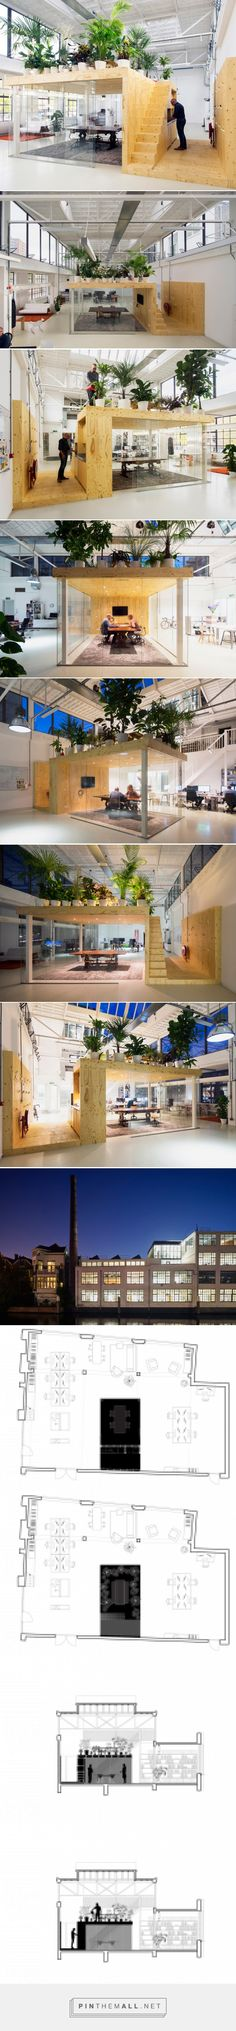 An interesting space saving idea for large offices!